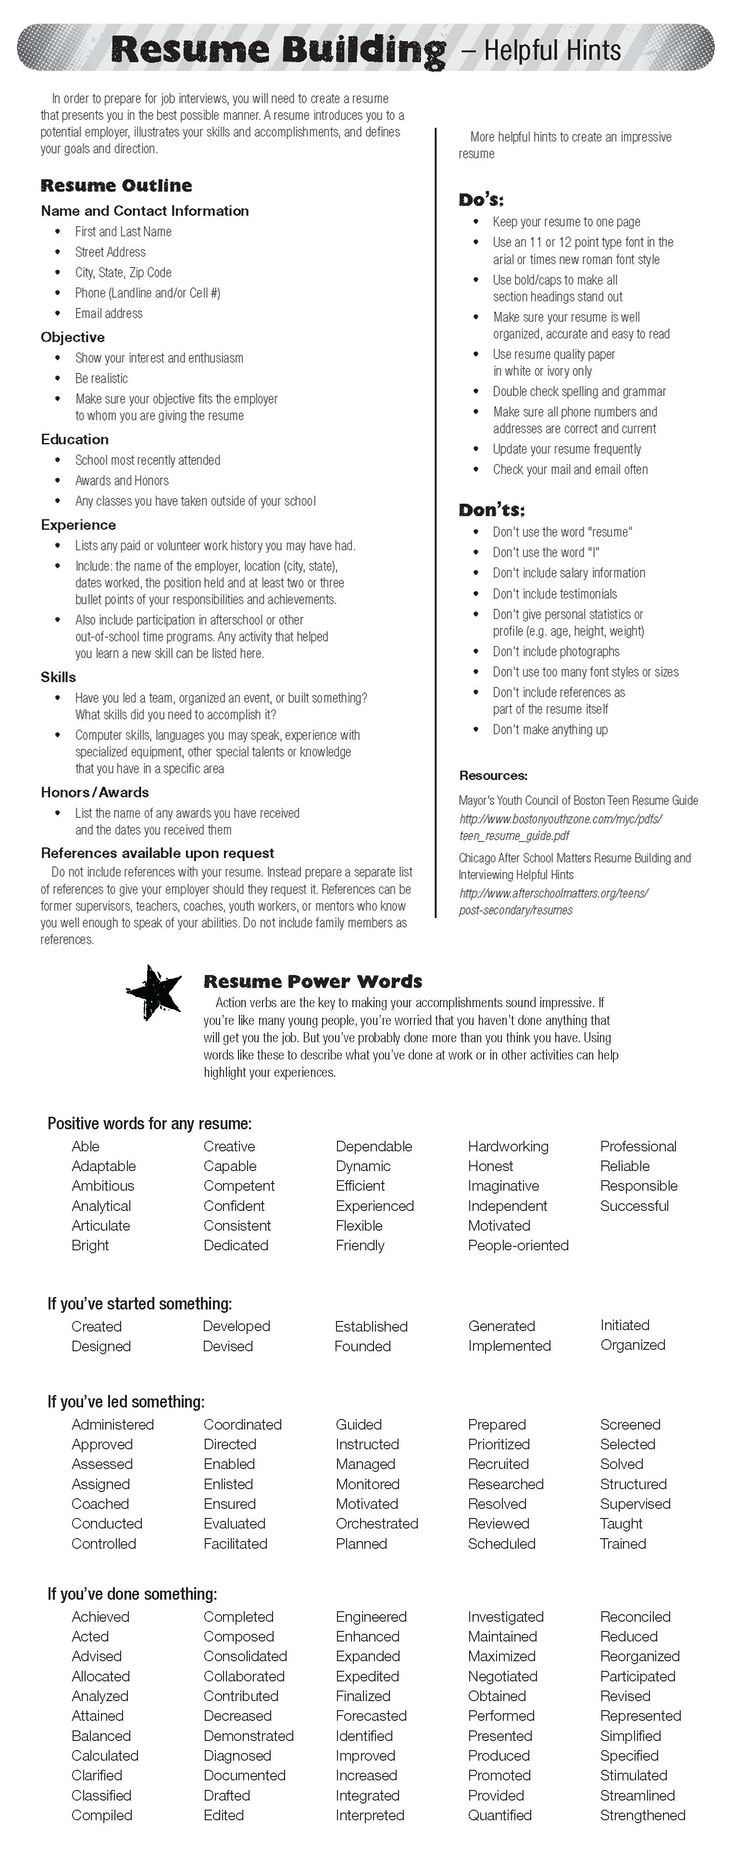 Opposenewapstandardsus  Splendid  Ideas About Resume On Pinterest  Cv Format Resume Cv And  With Magnificent  Ideas About Resume On Pinterest  Cv Format Resume Cv And Resume Templates With Astonishing Graphic Design Resume Examples Also Resume Services Online In Addition Retail Assistant Manager Resume And Business Resume Examples As Well As Key Qualifications Resume Additionally Front Desk Receptionist Resume From Pinterestcom With Opposenewapstandardsus  Magnificent  Ideas About Resume On Pinterest  Cv Format Resume Cv And  With Astonishing  Ideas About Resume On Pinterest  Cv Format Resume Cv And Resume Templates And Splendid Graphic Design Resume Examples Also Resume Services Online In Addition Retail Assistant Manager Resume From Pinterestcom